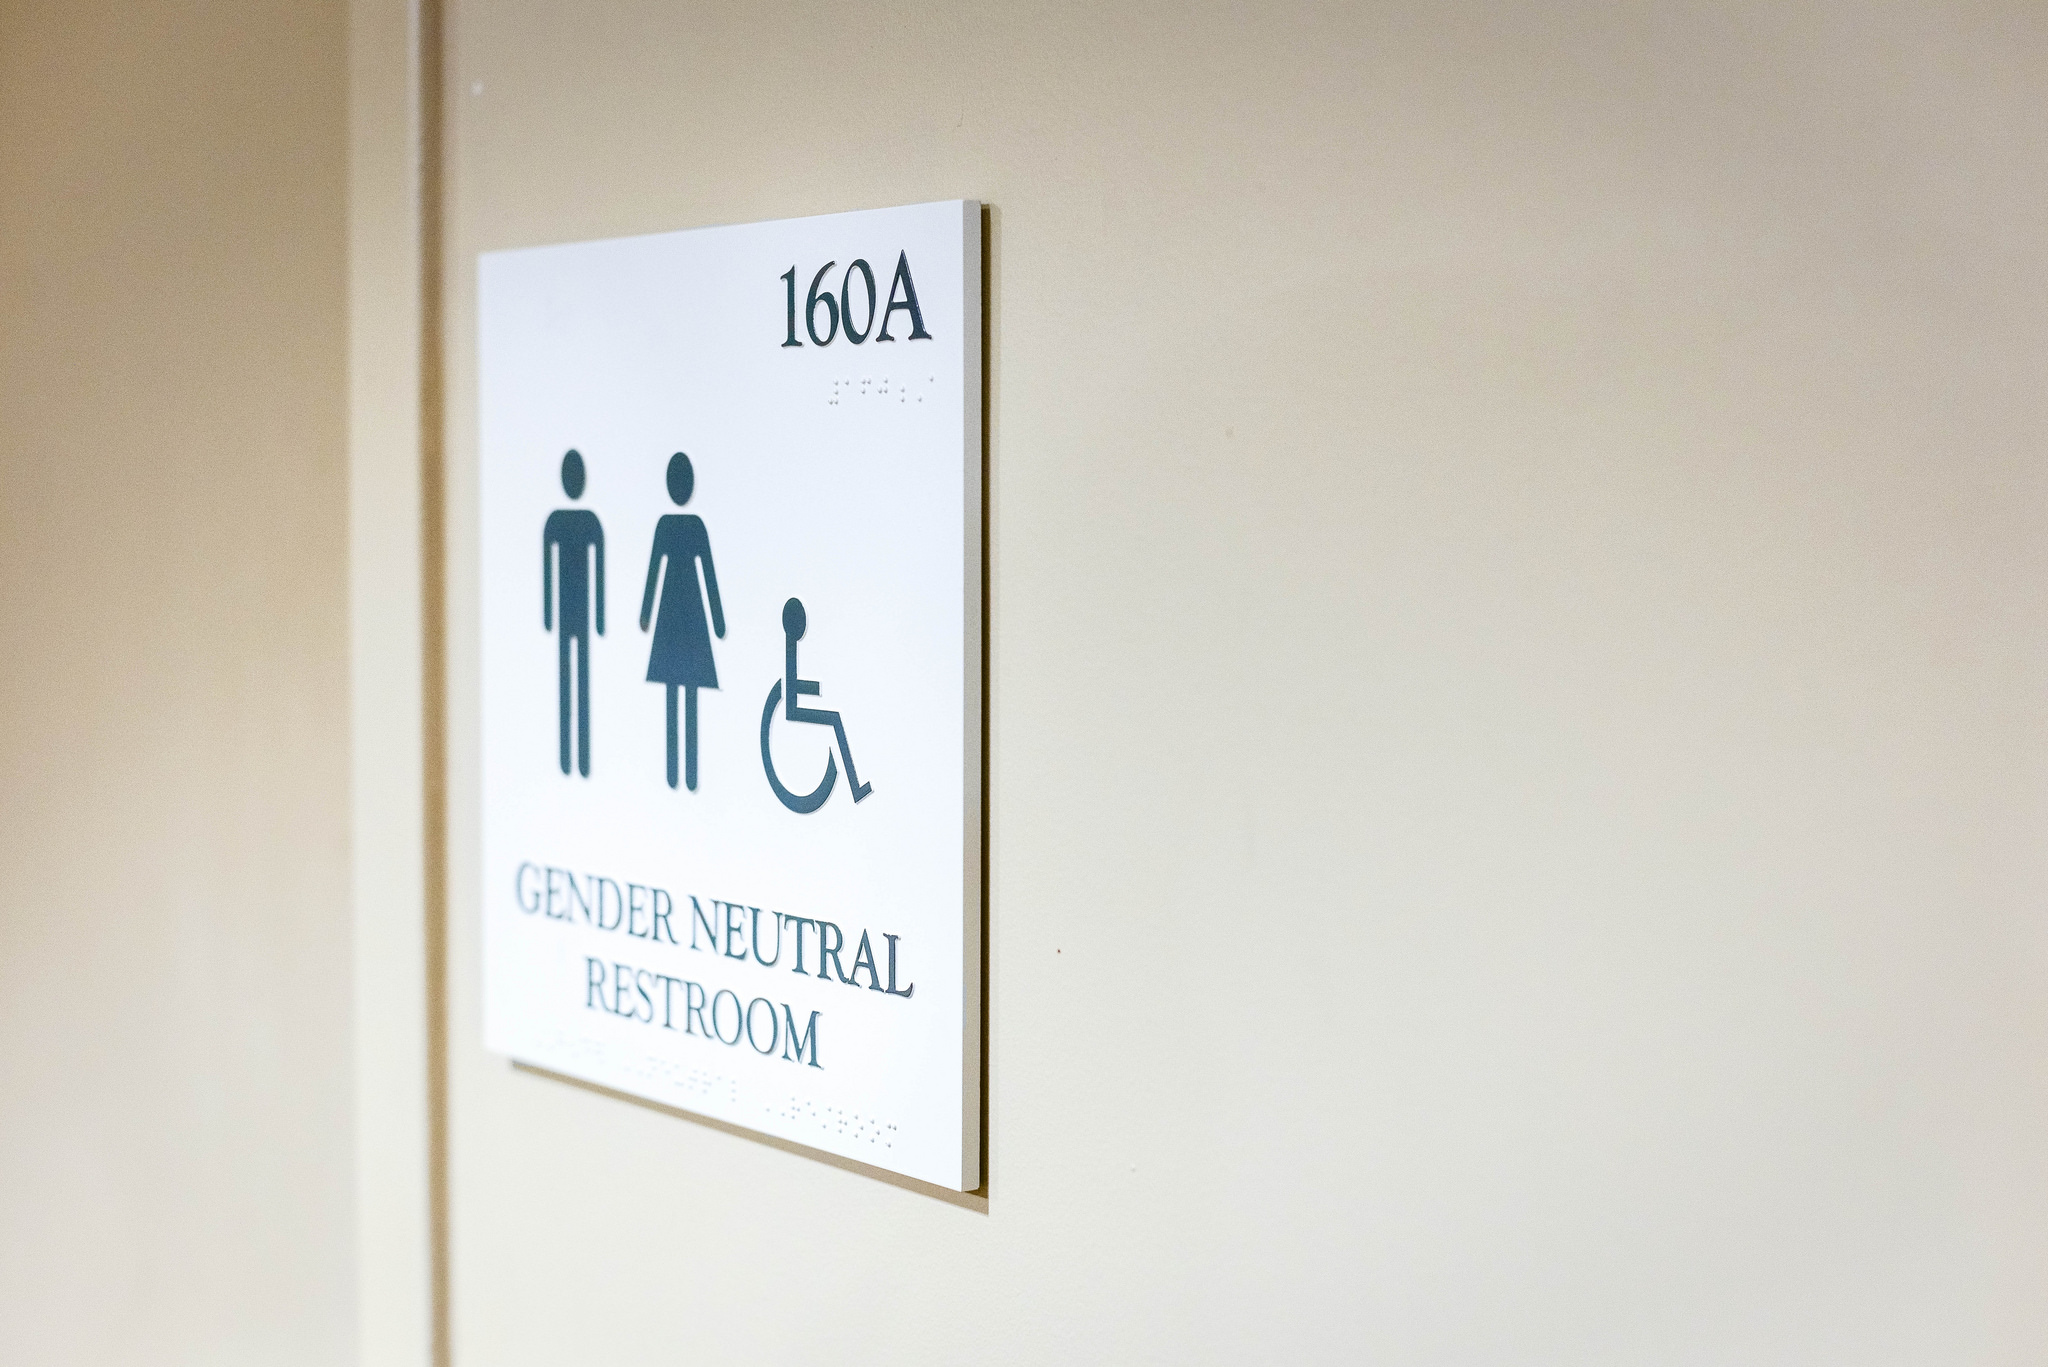 Gender Neutral Bathroom Initiative Advances The Miscellany News - Why gender neutral bathrooms are important